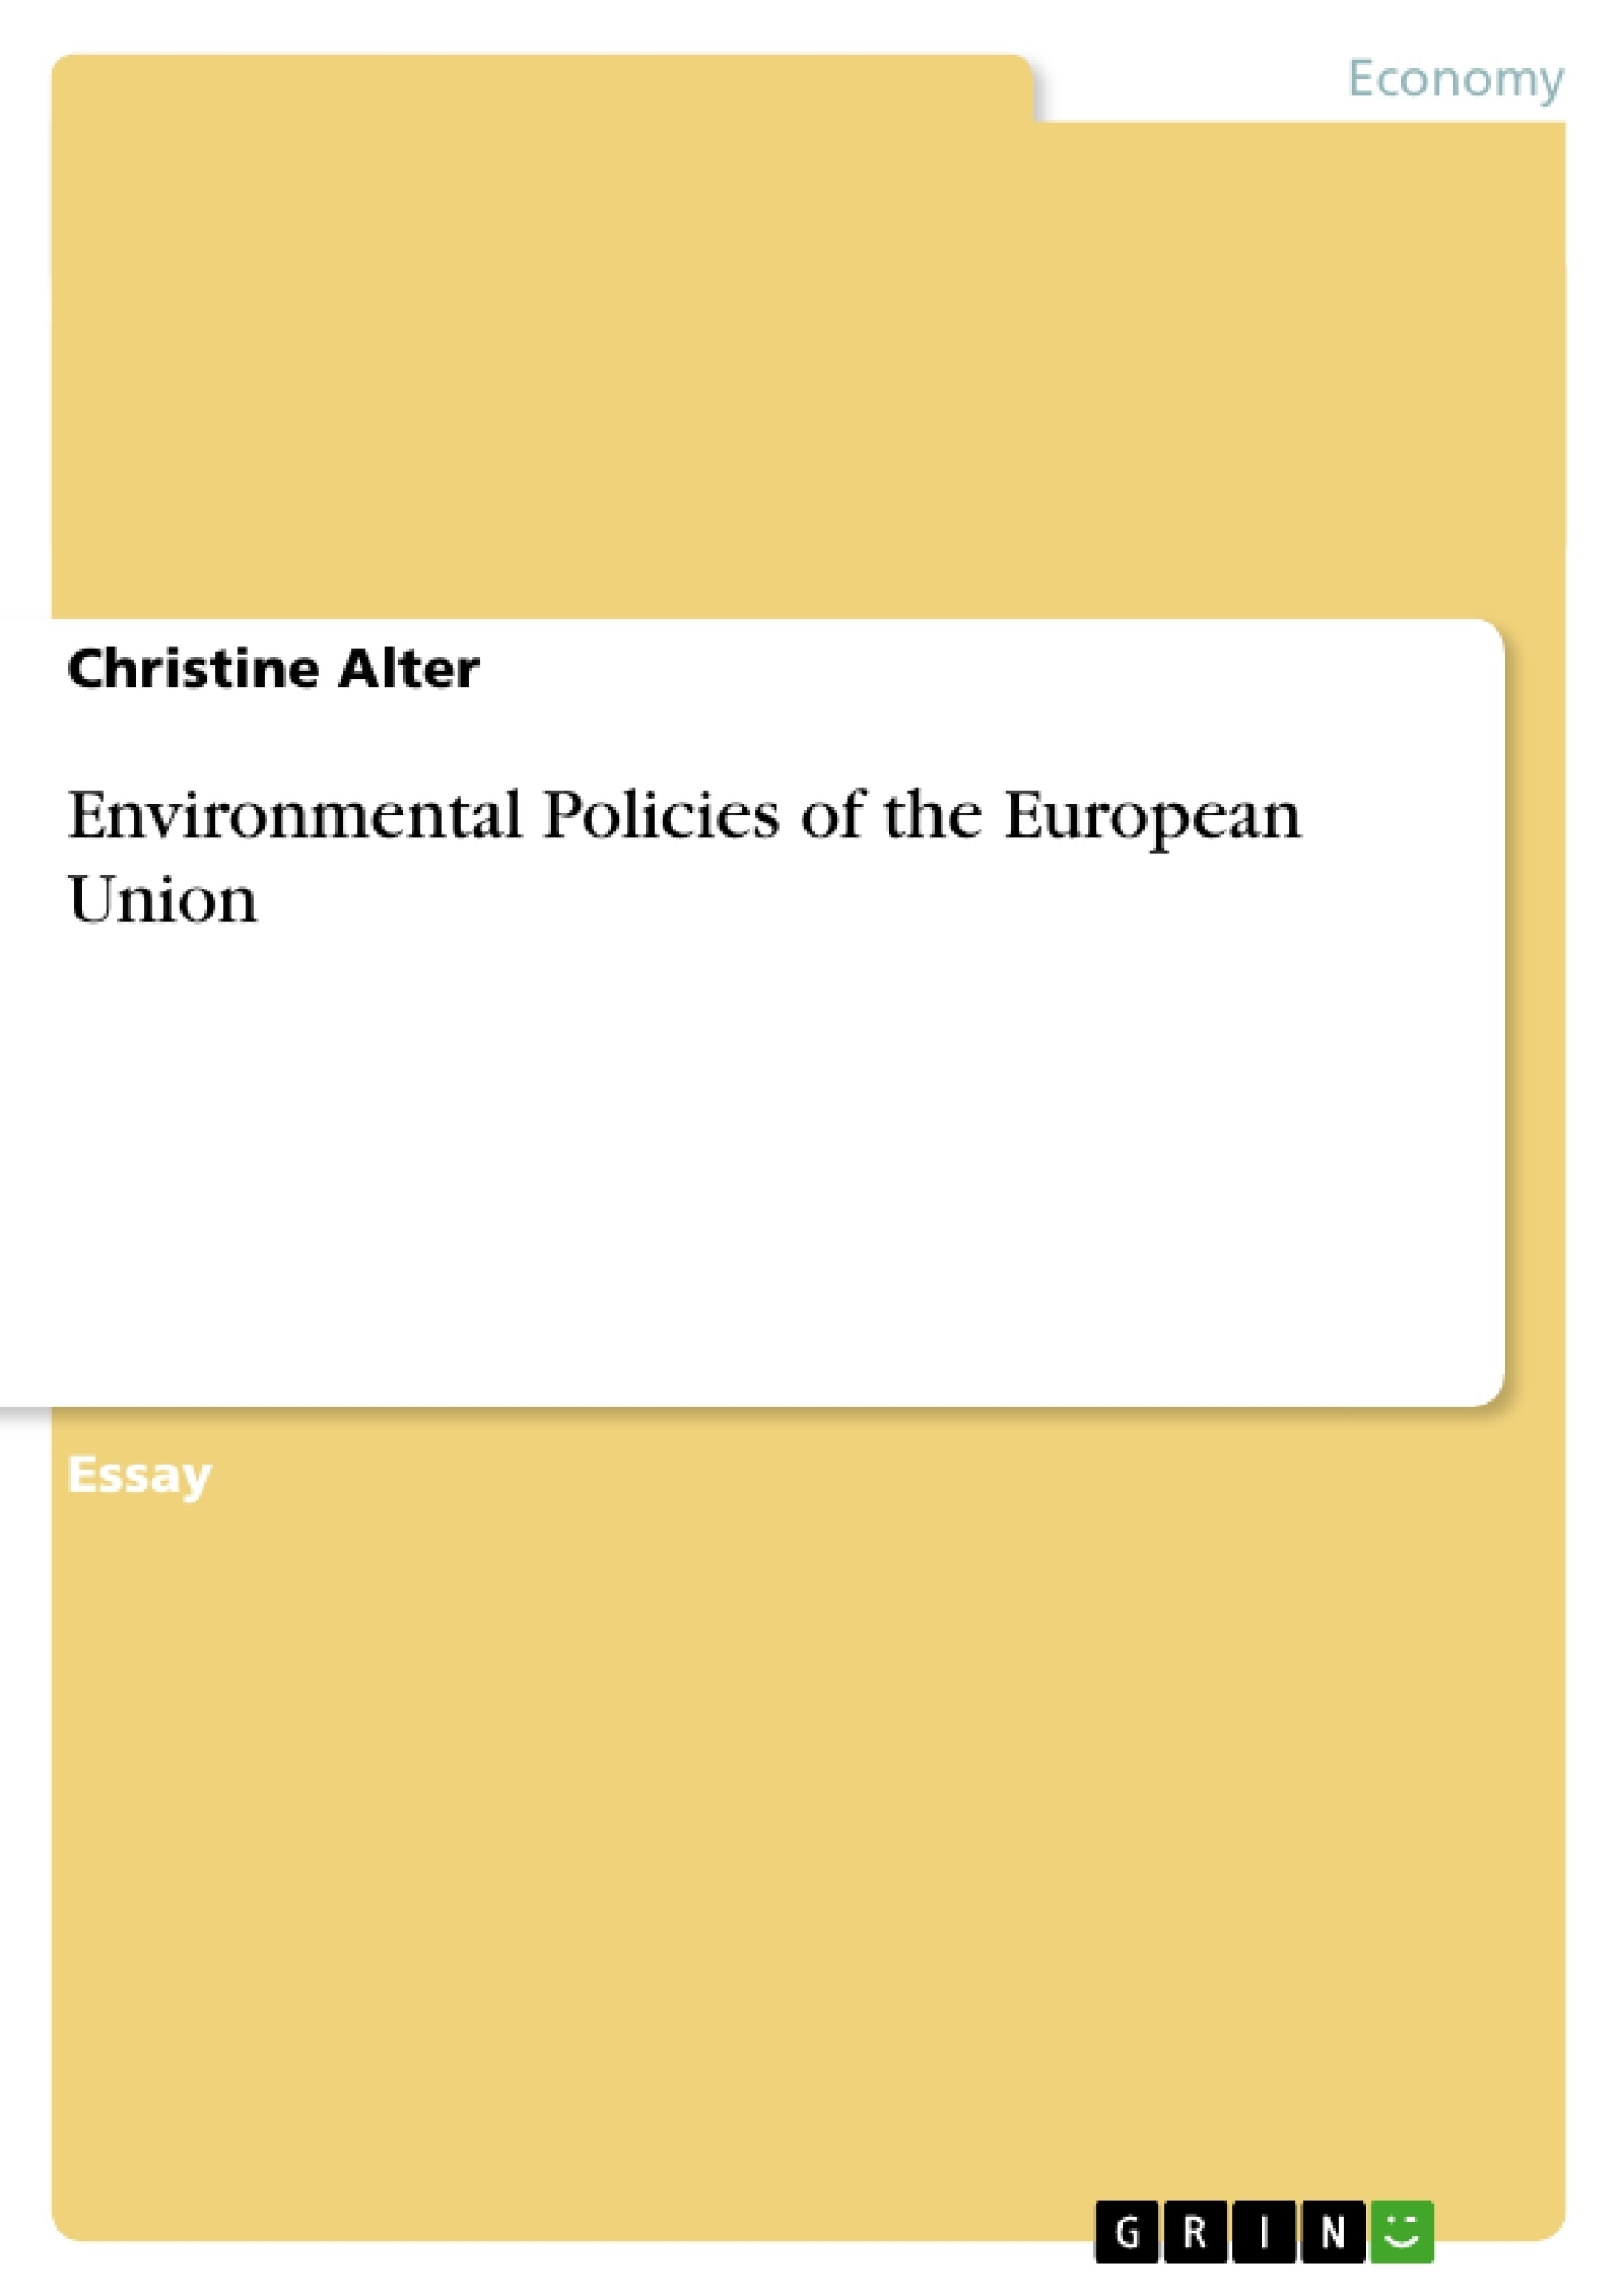 Essay environmental policy eu